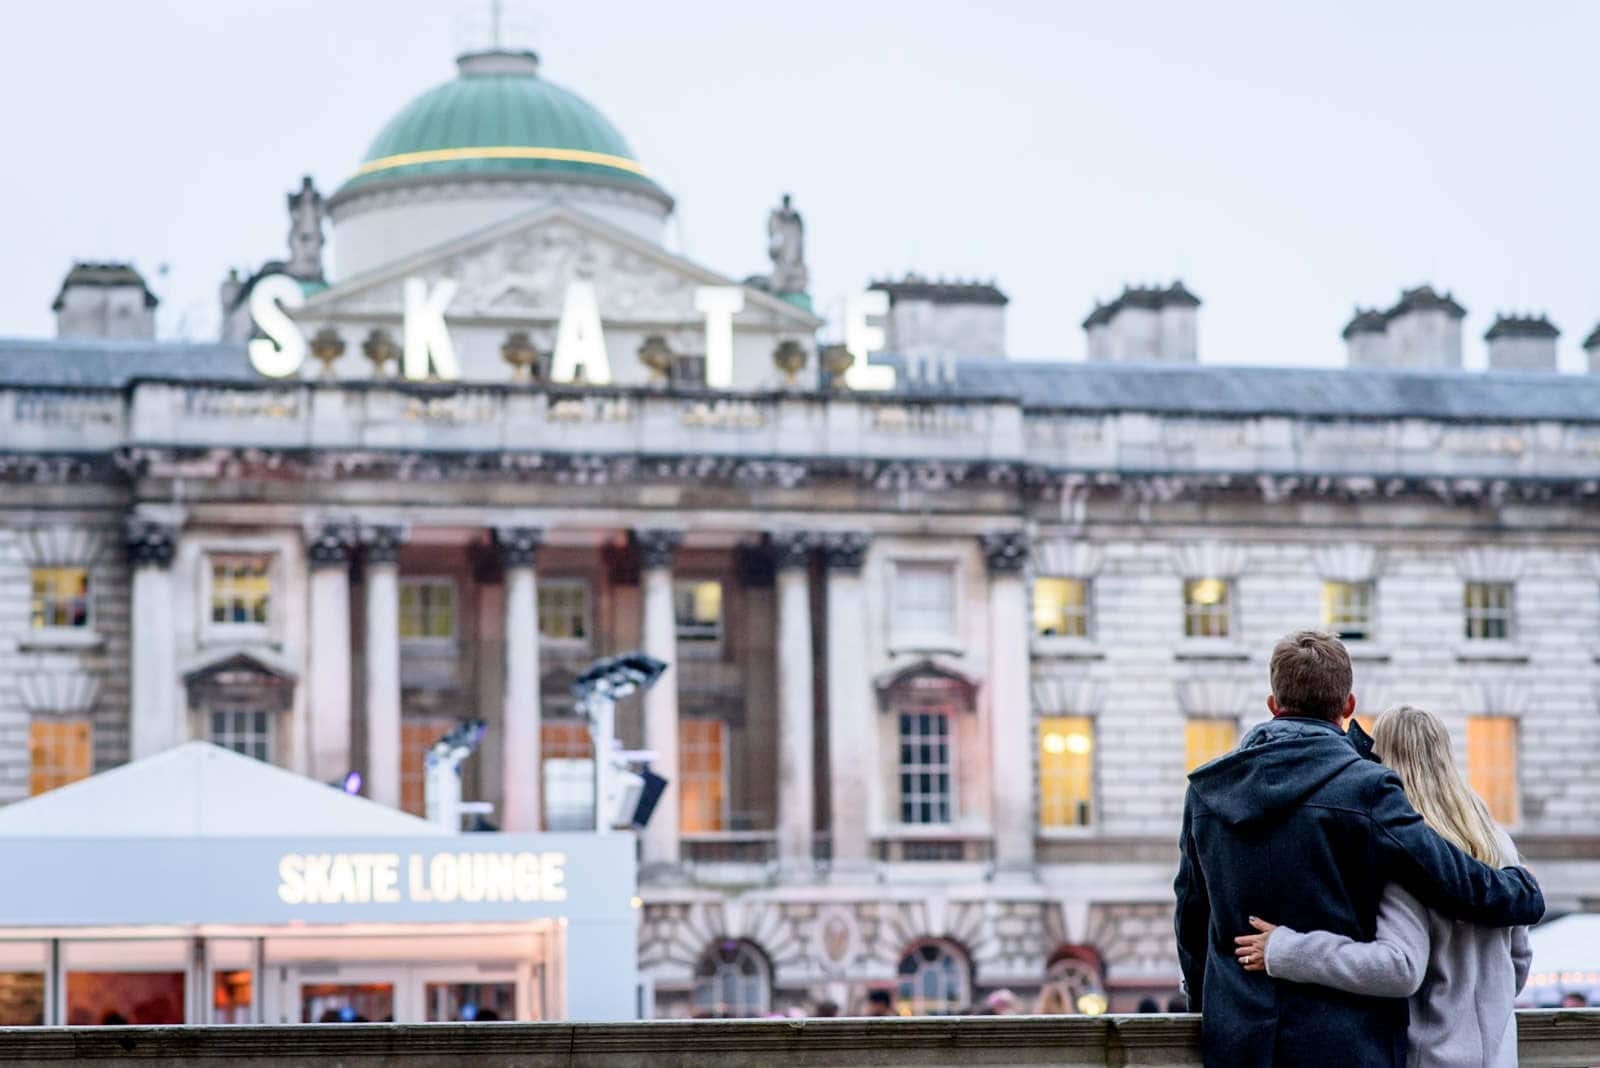 A couple hugging in somerset house